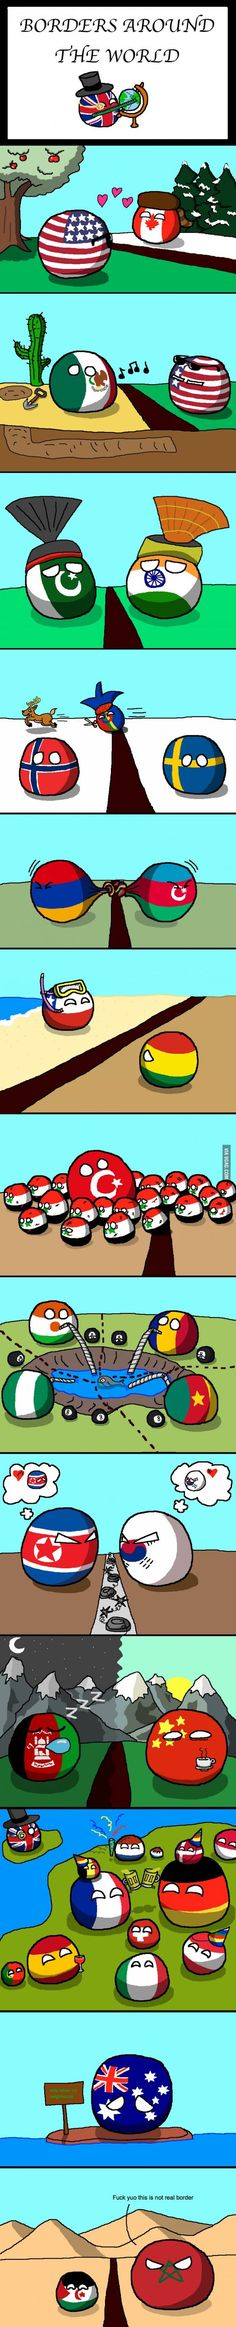 """Borders Around the World"" by Fedcom  #polandball #countryball #flagball:"